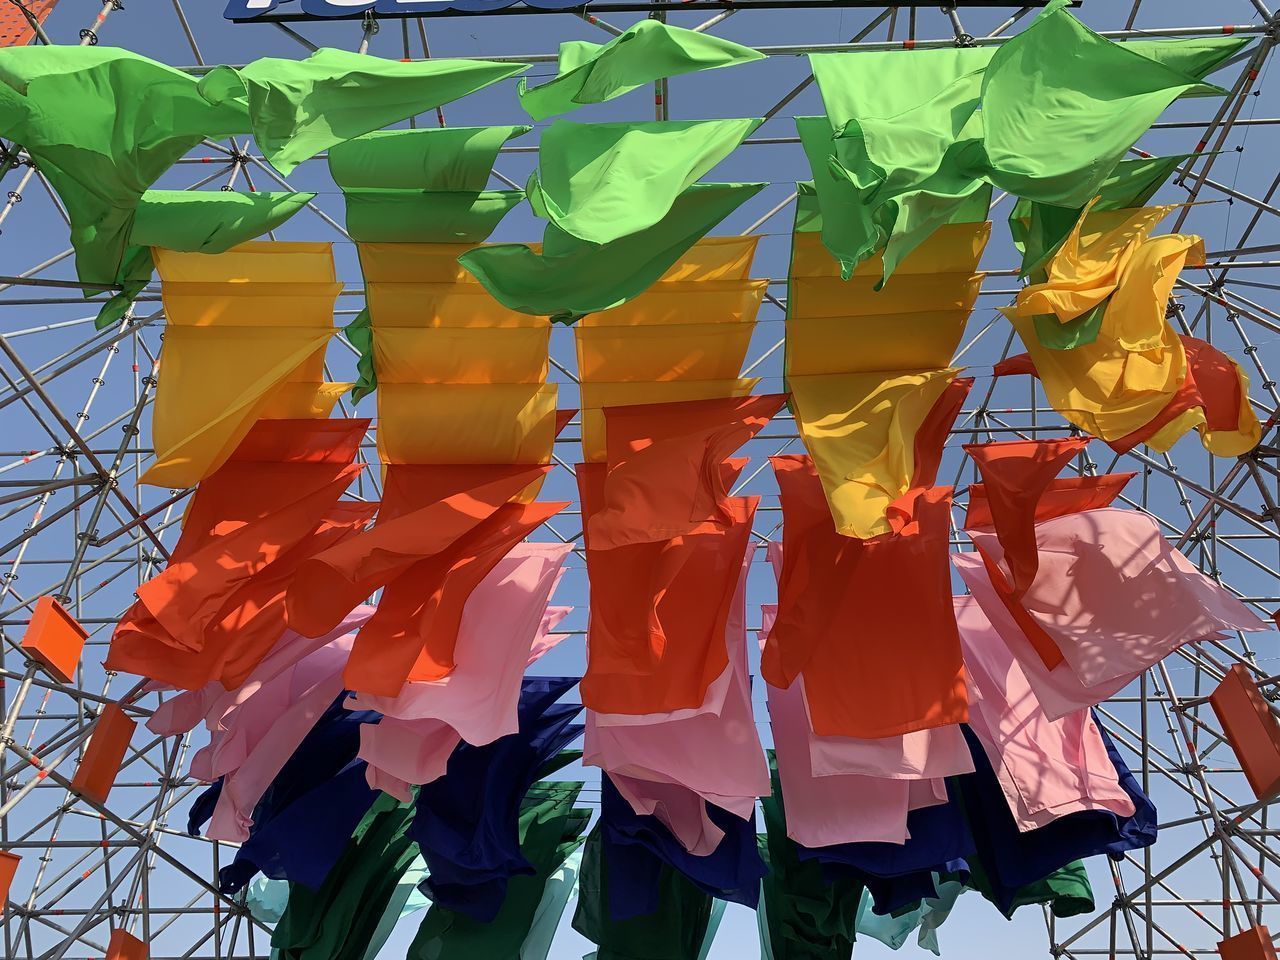 day, multi colored, nature, hanging, side by side, no people, green color, outdoors, in a row, textile, plant, clothing, yellow, large group of objects, orange color, focus on foreground, safety, repetition, leaf, flag, orange